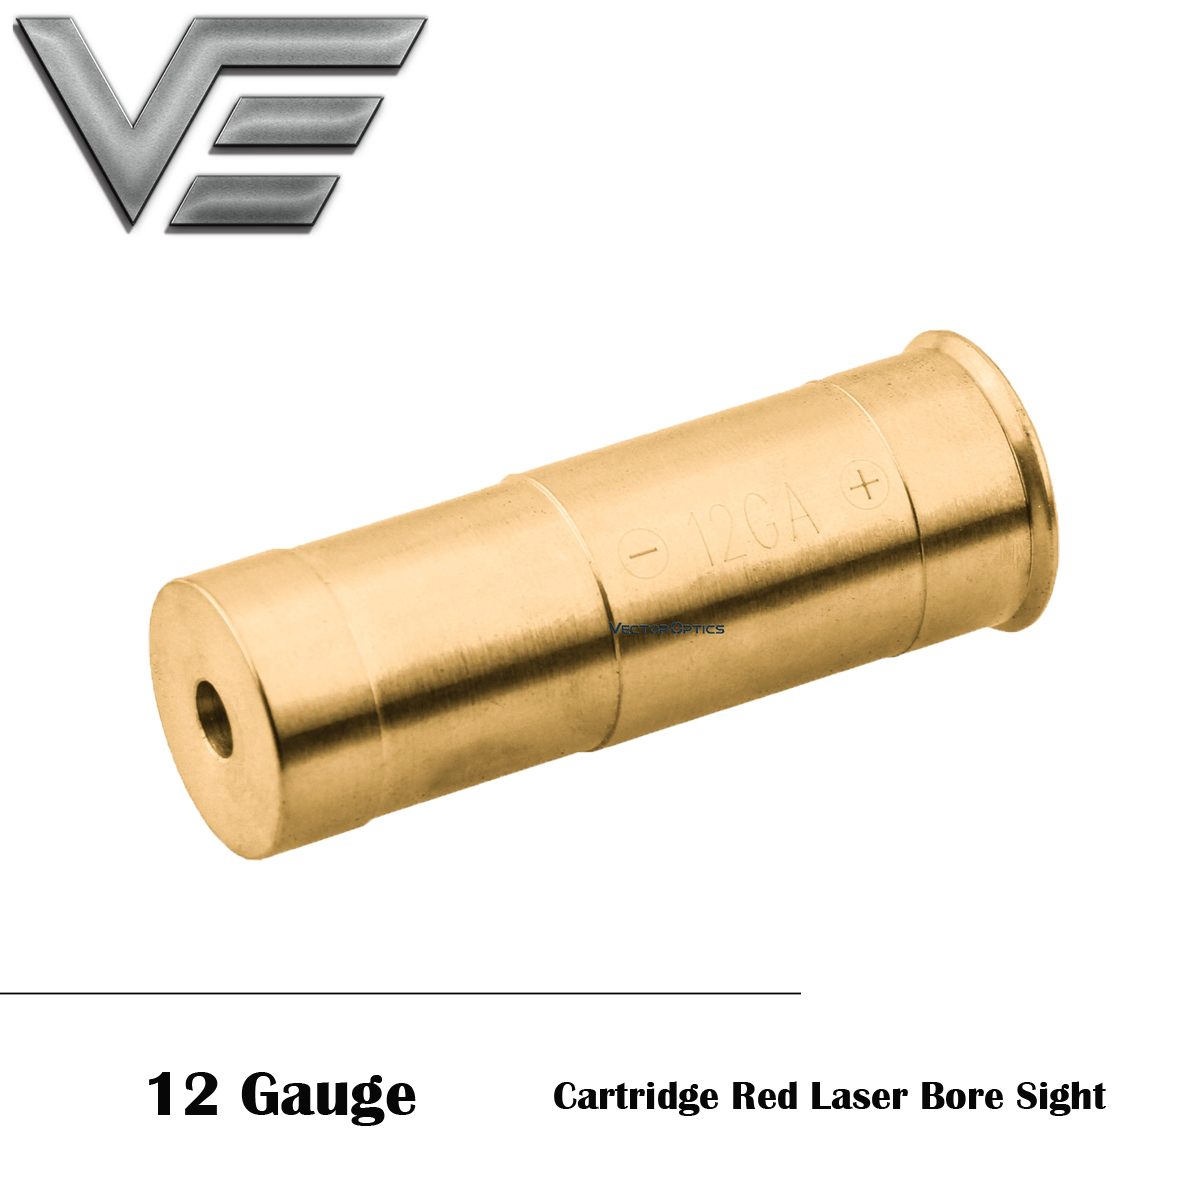 Vector Optics 12 Gauge Cartridge Red Laser Bore Sight Tactical Accuracy Laser Boresighter AG13 Battery For Rifle Air Accessories